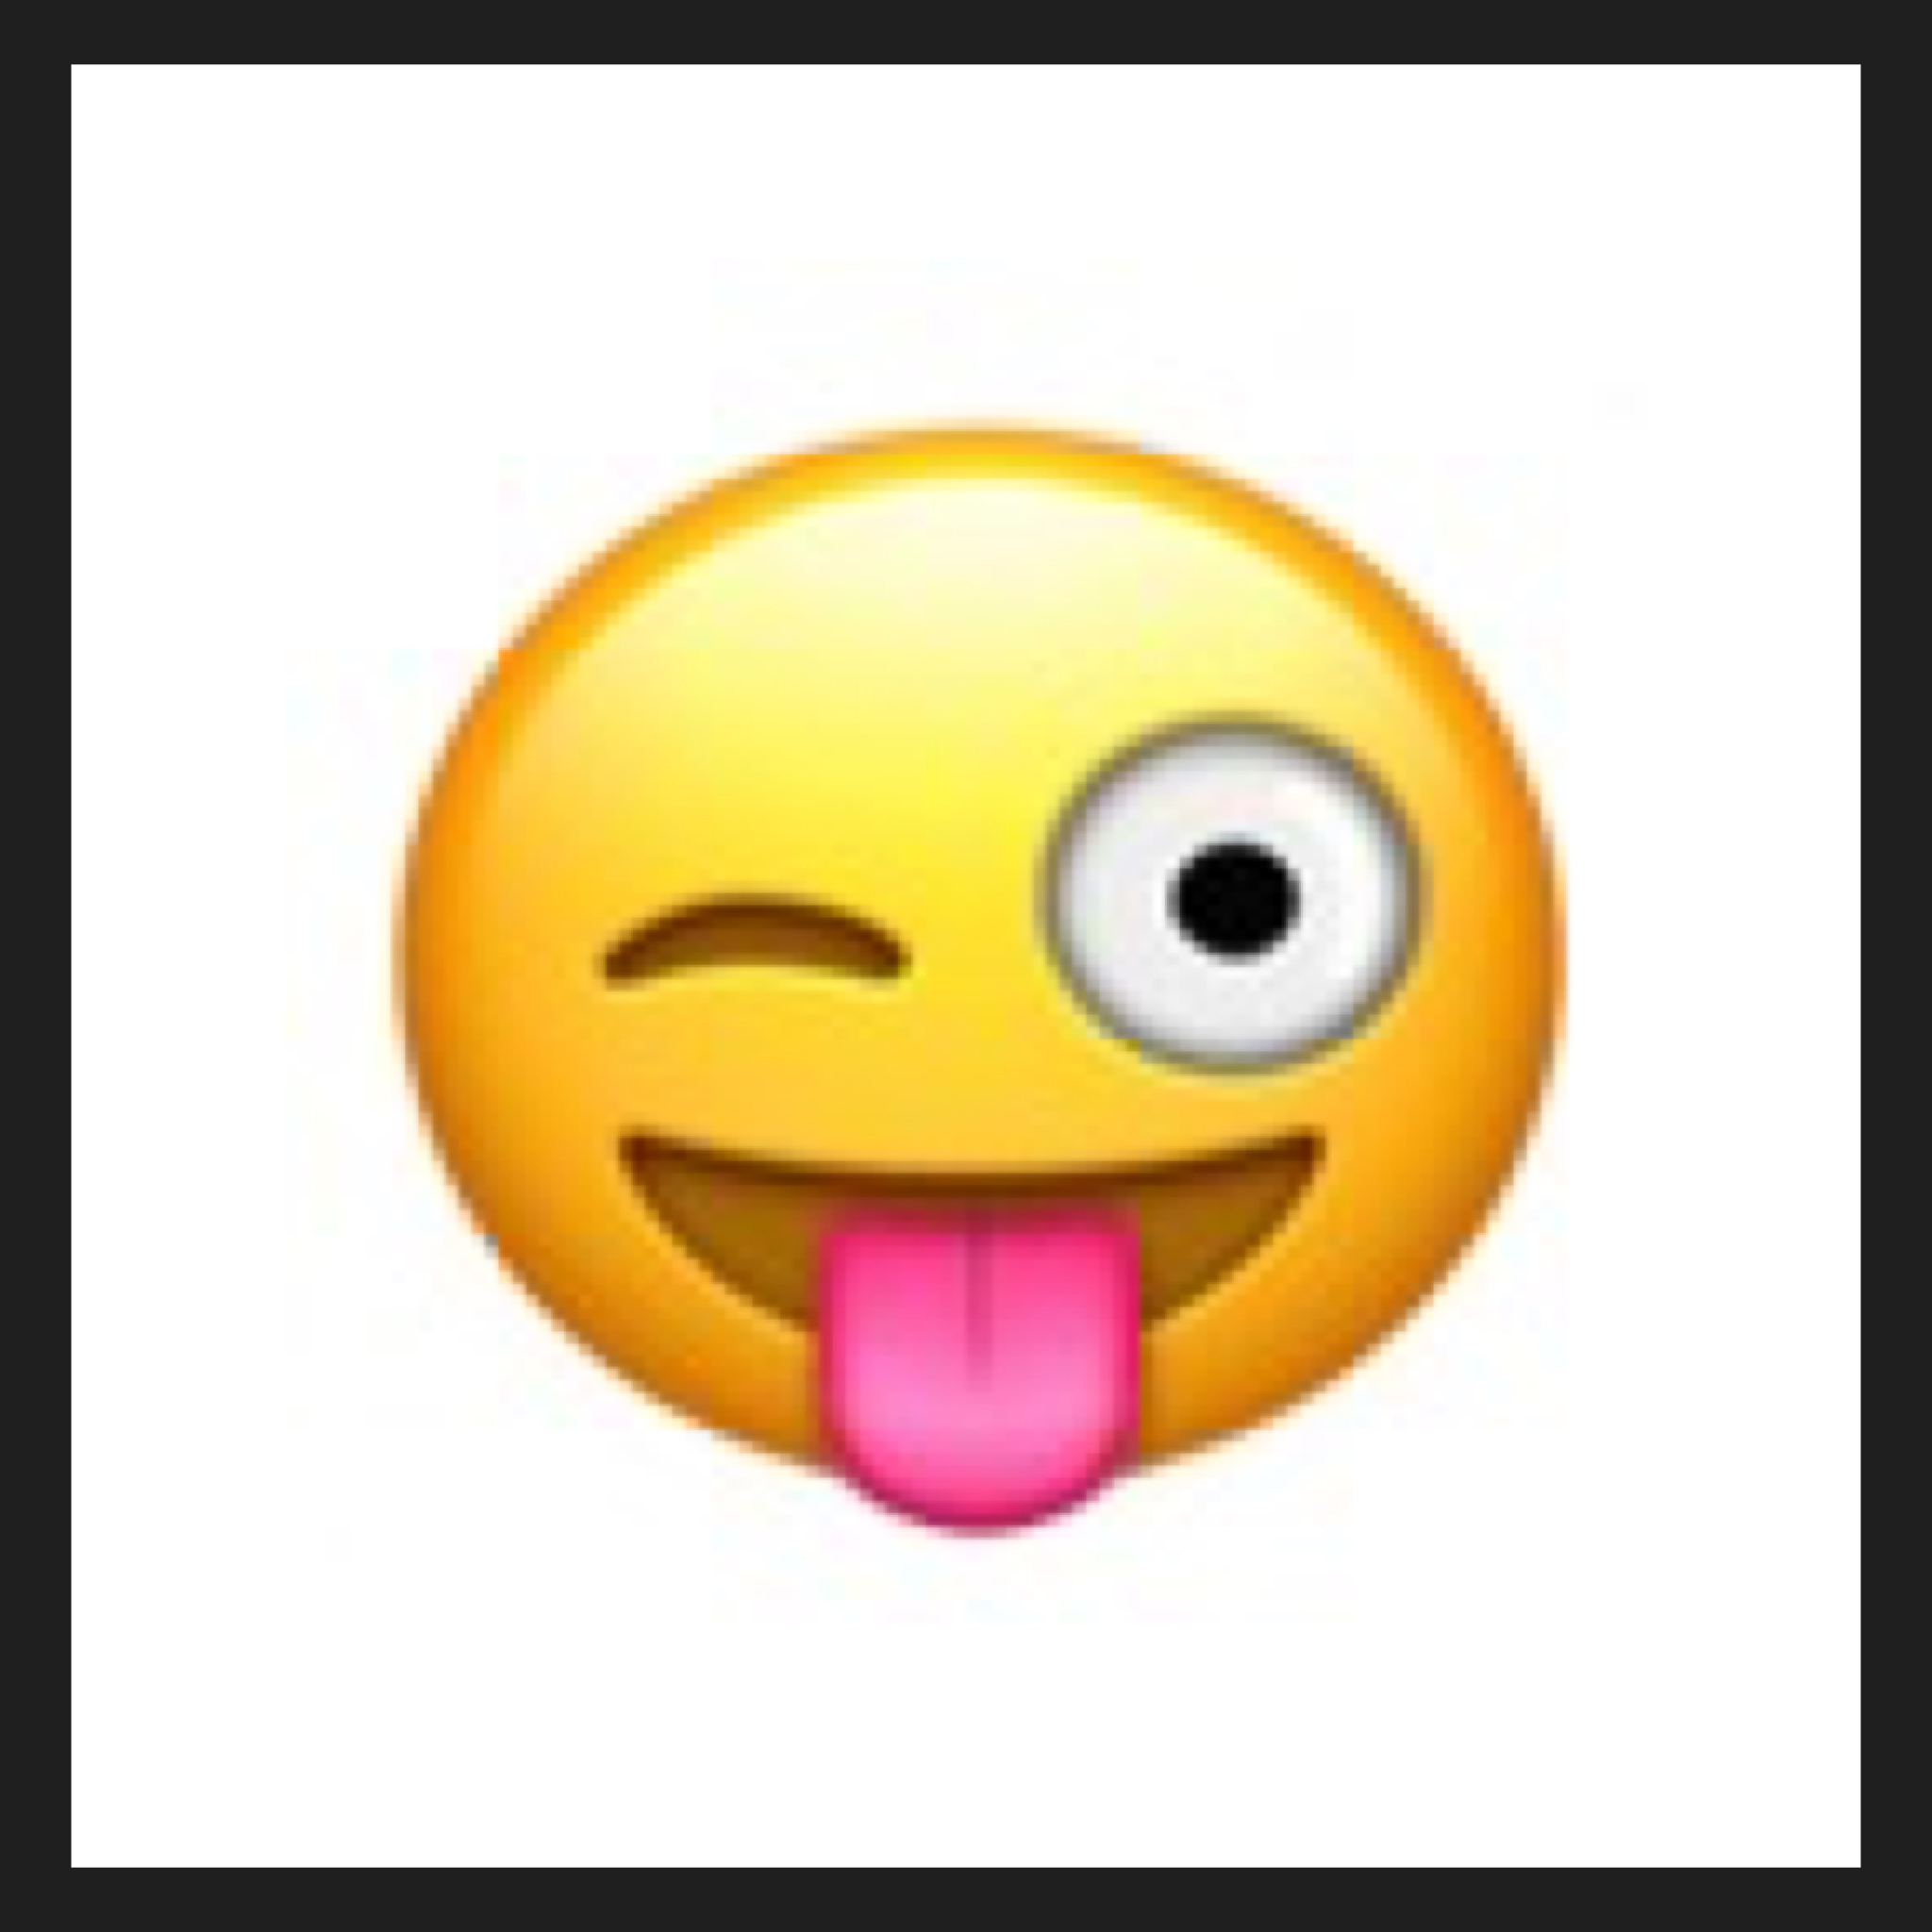 Parents, Do You Know the Most Common Emojis Used in Sexting?